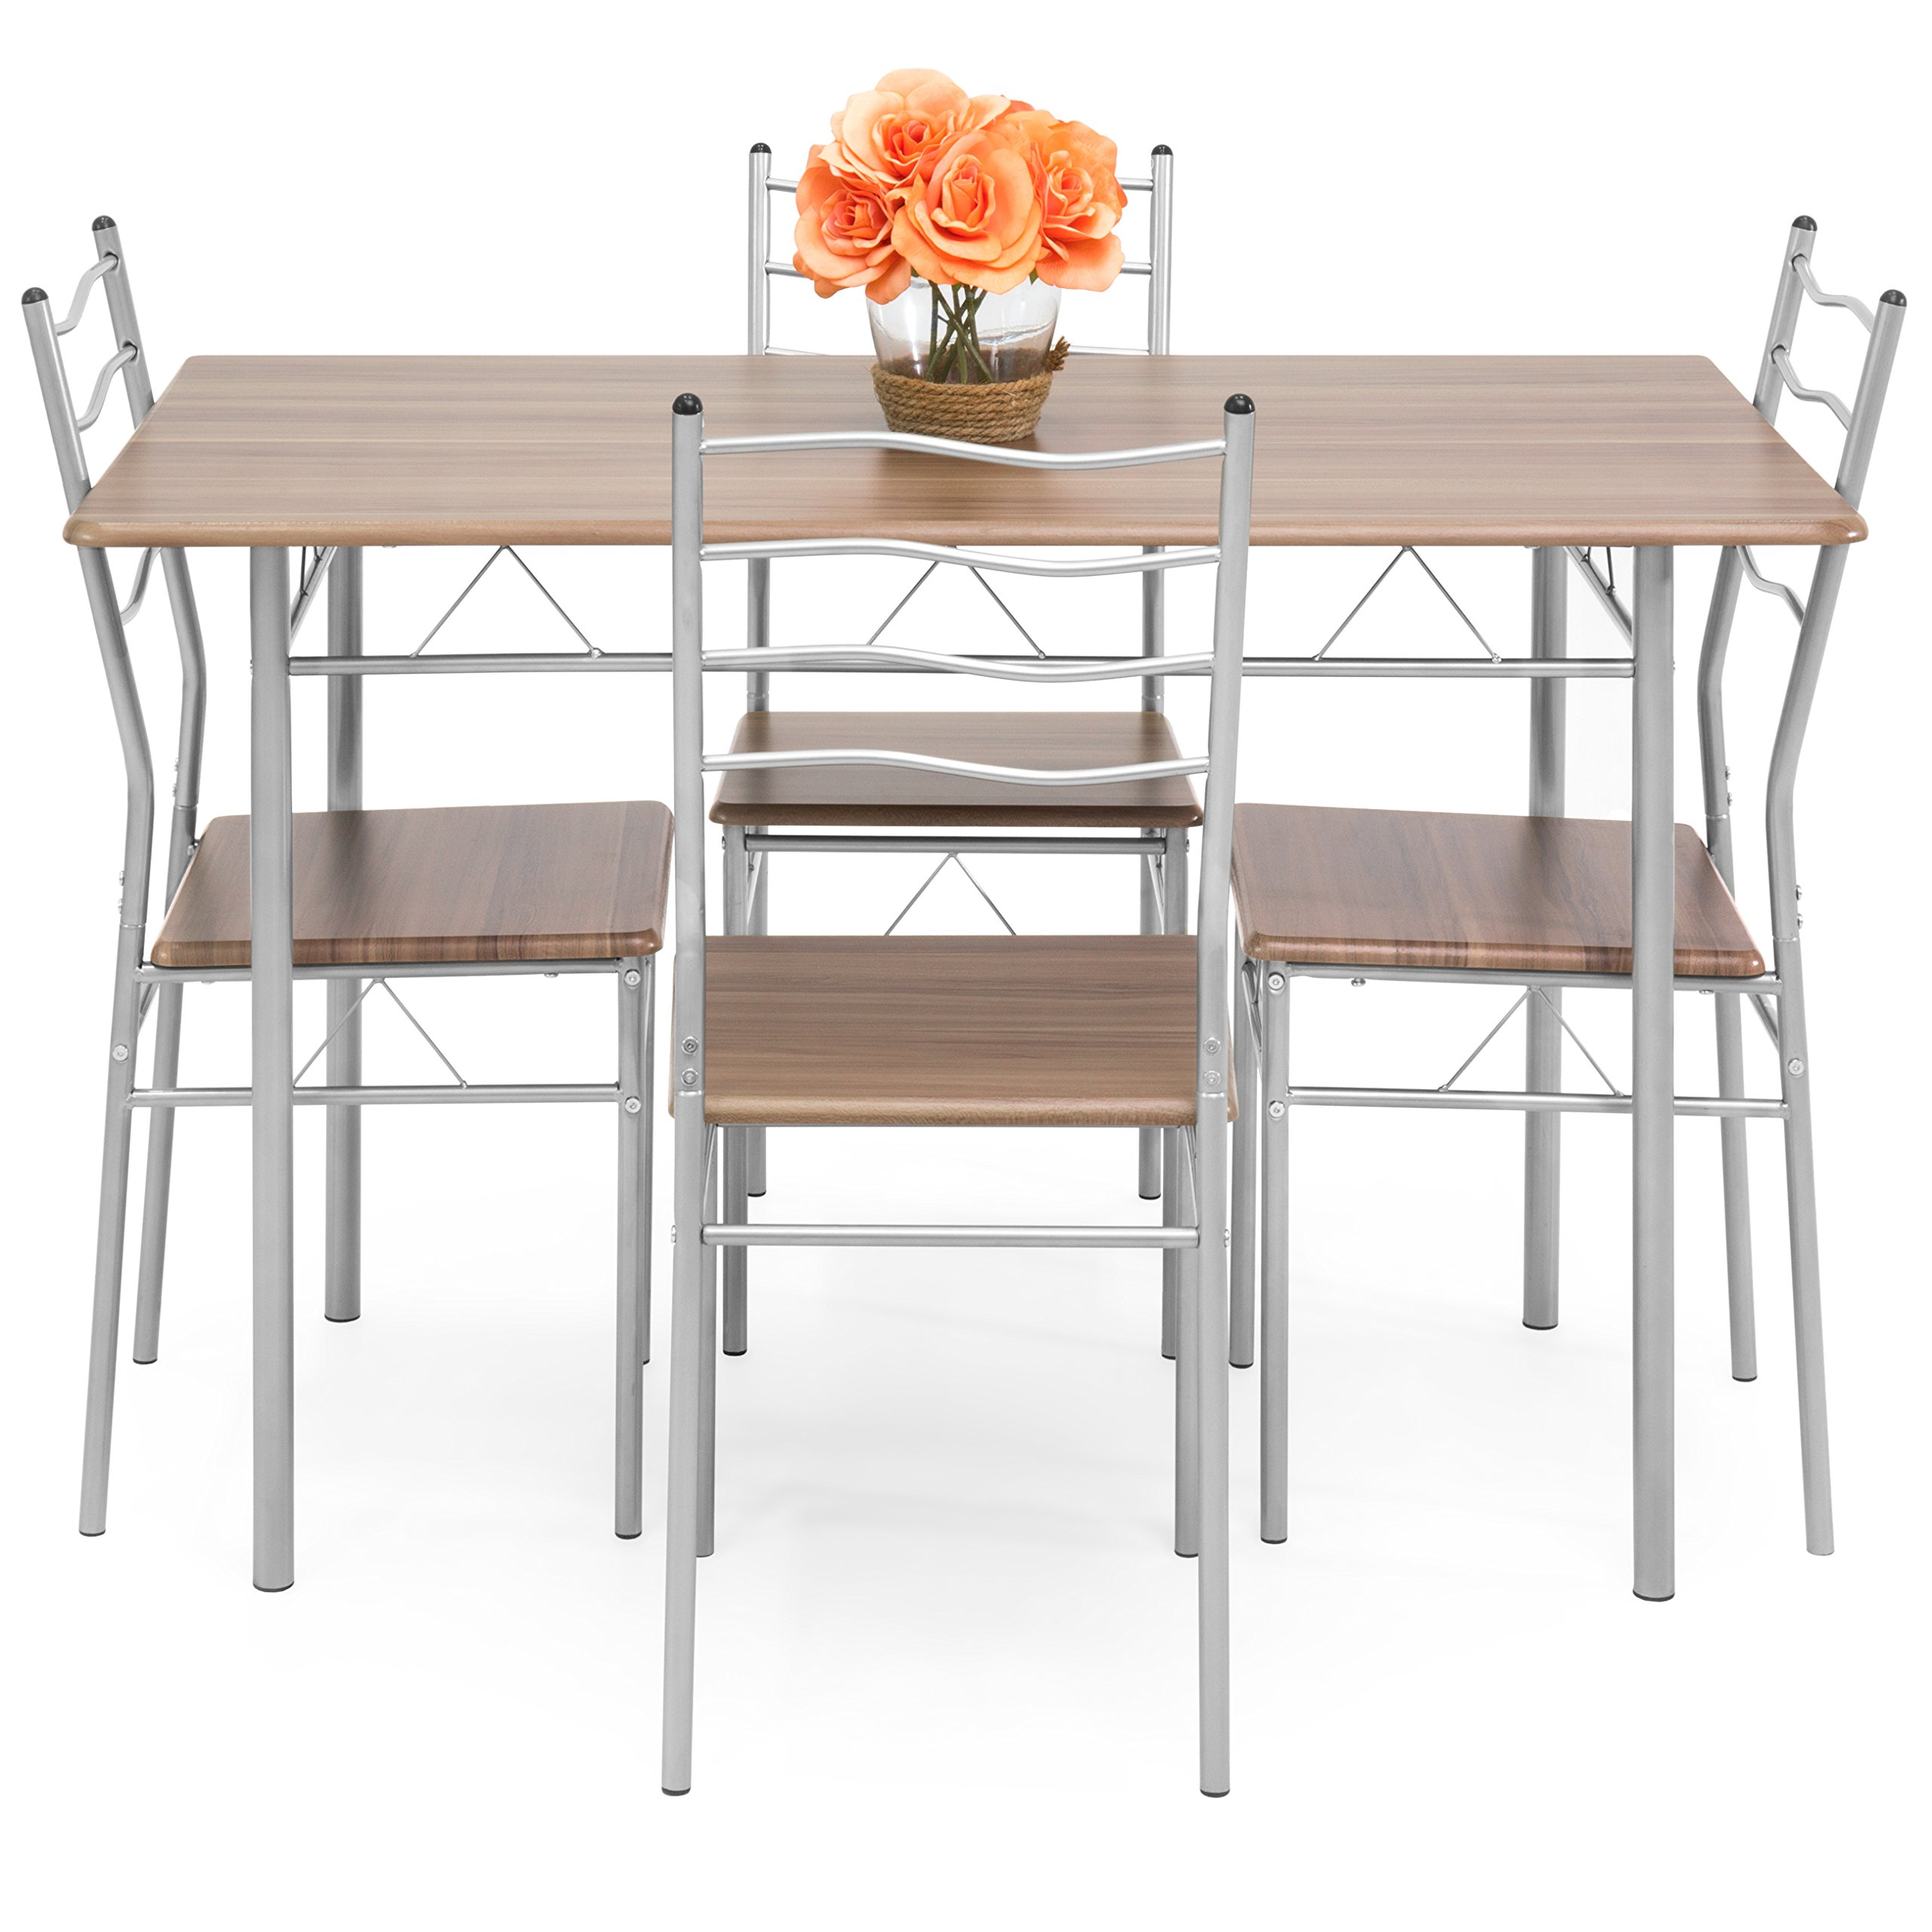 Best Choice Products 5-Piece 4-Foot Modern Wooden Kitchen Table Dining Set w/Metal Legs, 4 Chairs, Brown/Silver by Best Choice Products (Image #2)